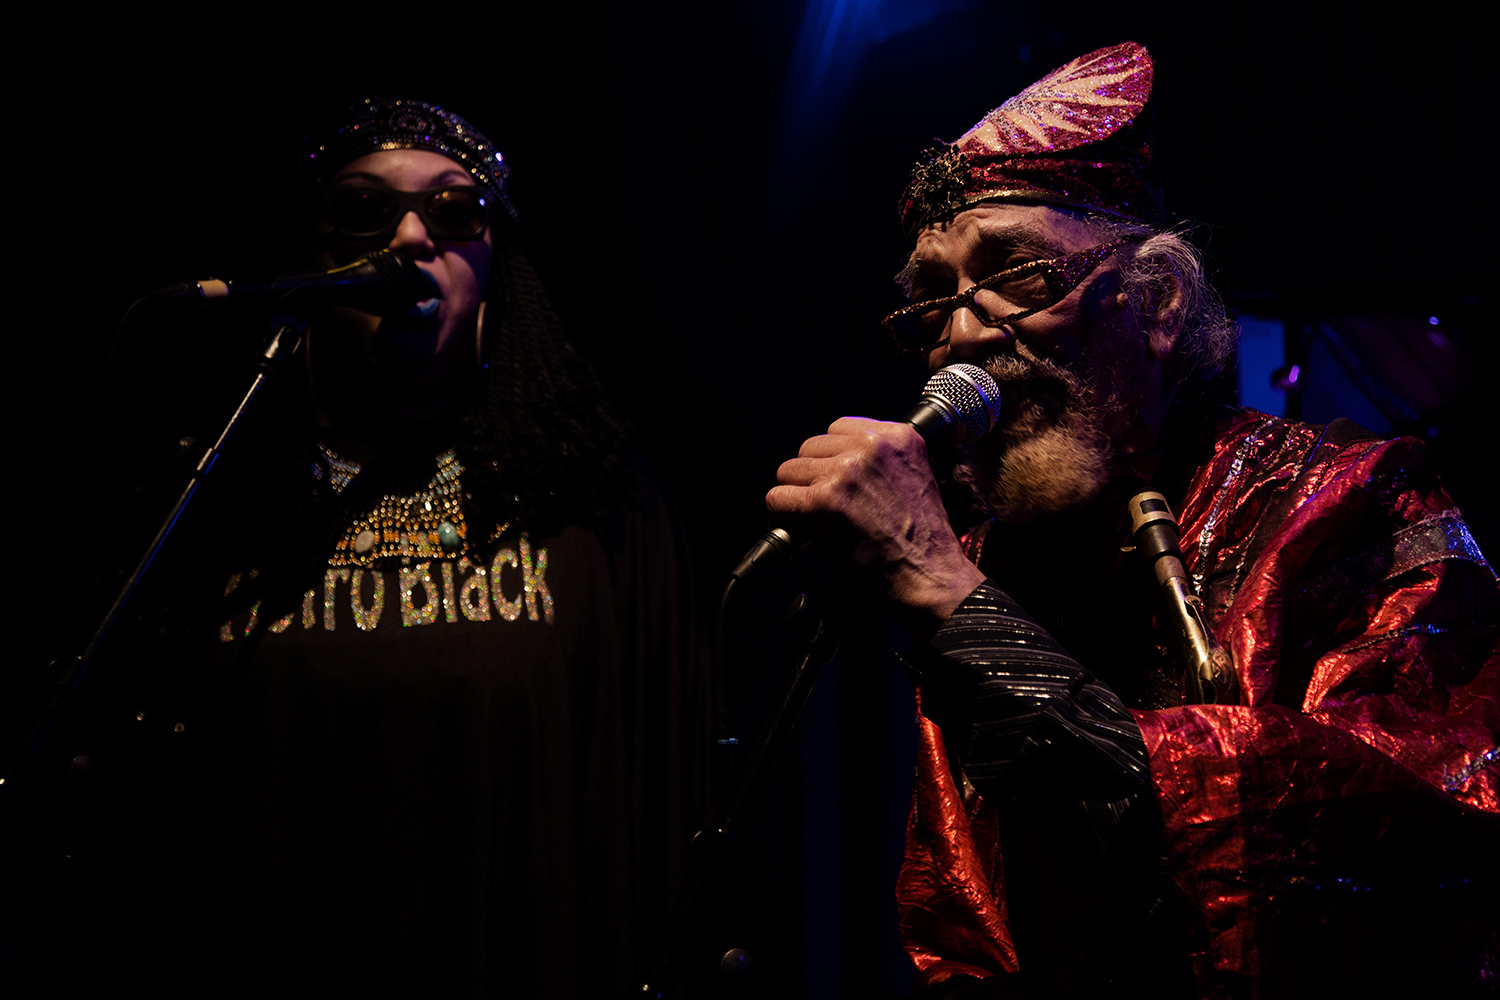 Sun Ra Arkestra directed by Marshall Allen by Laurent Orseau - Concert - Les Ateliers Claus - Brussels, Belgium #10